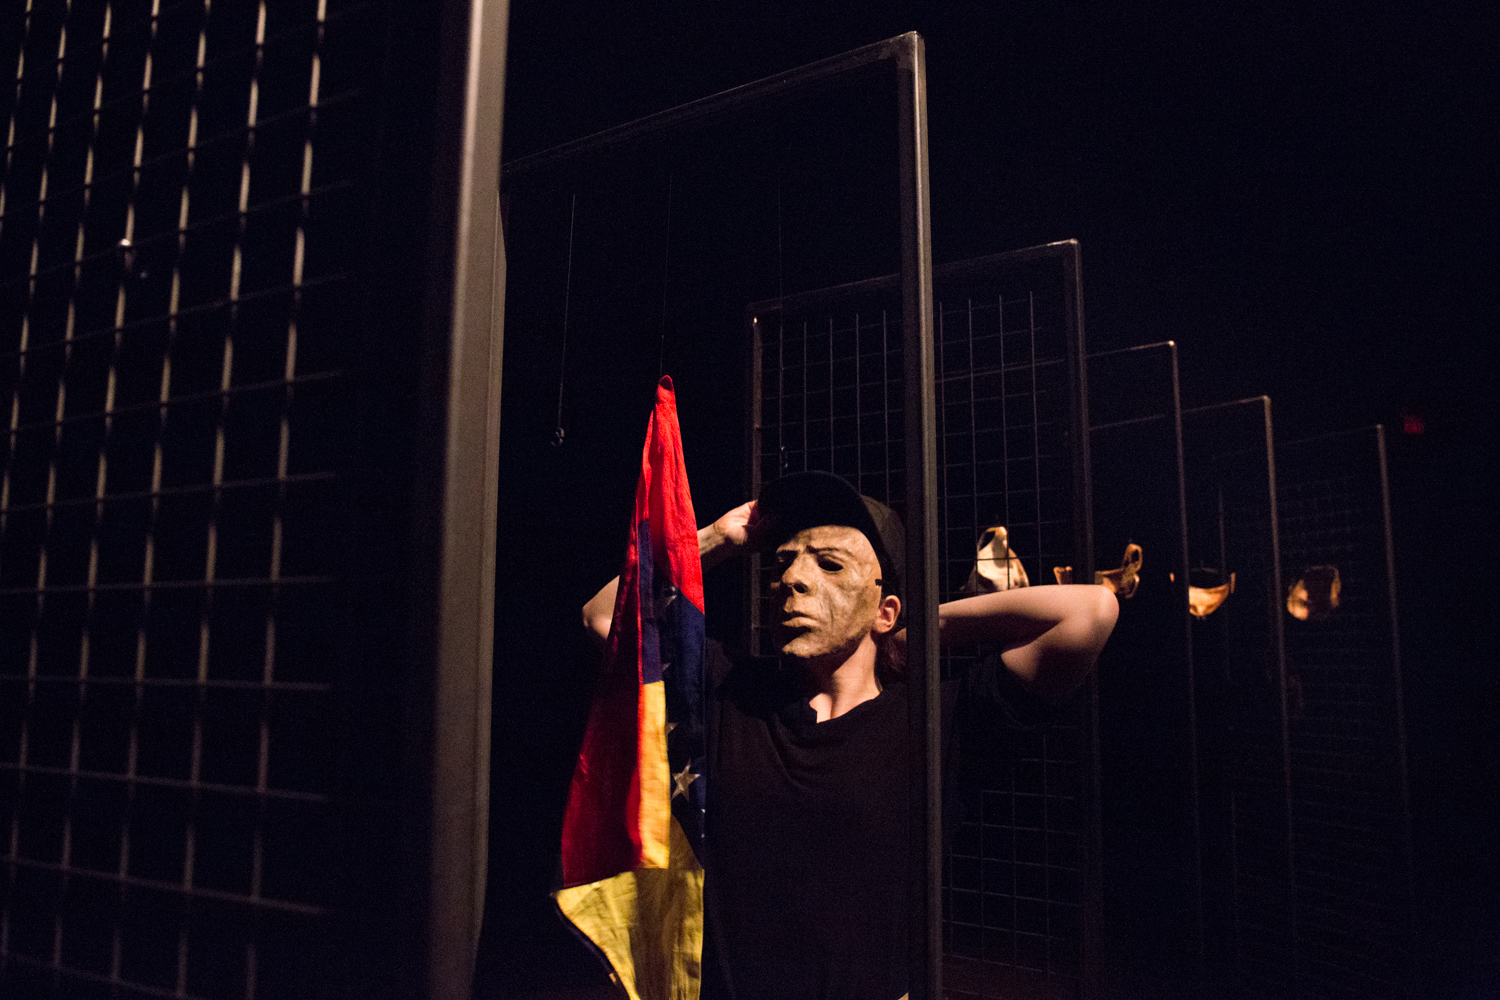 BWW Review: ELSEWHERE at Centaur Theatre - Classical Mask as Protest Theatre